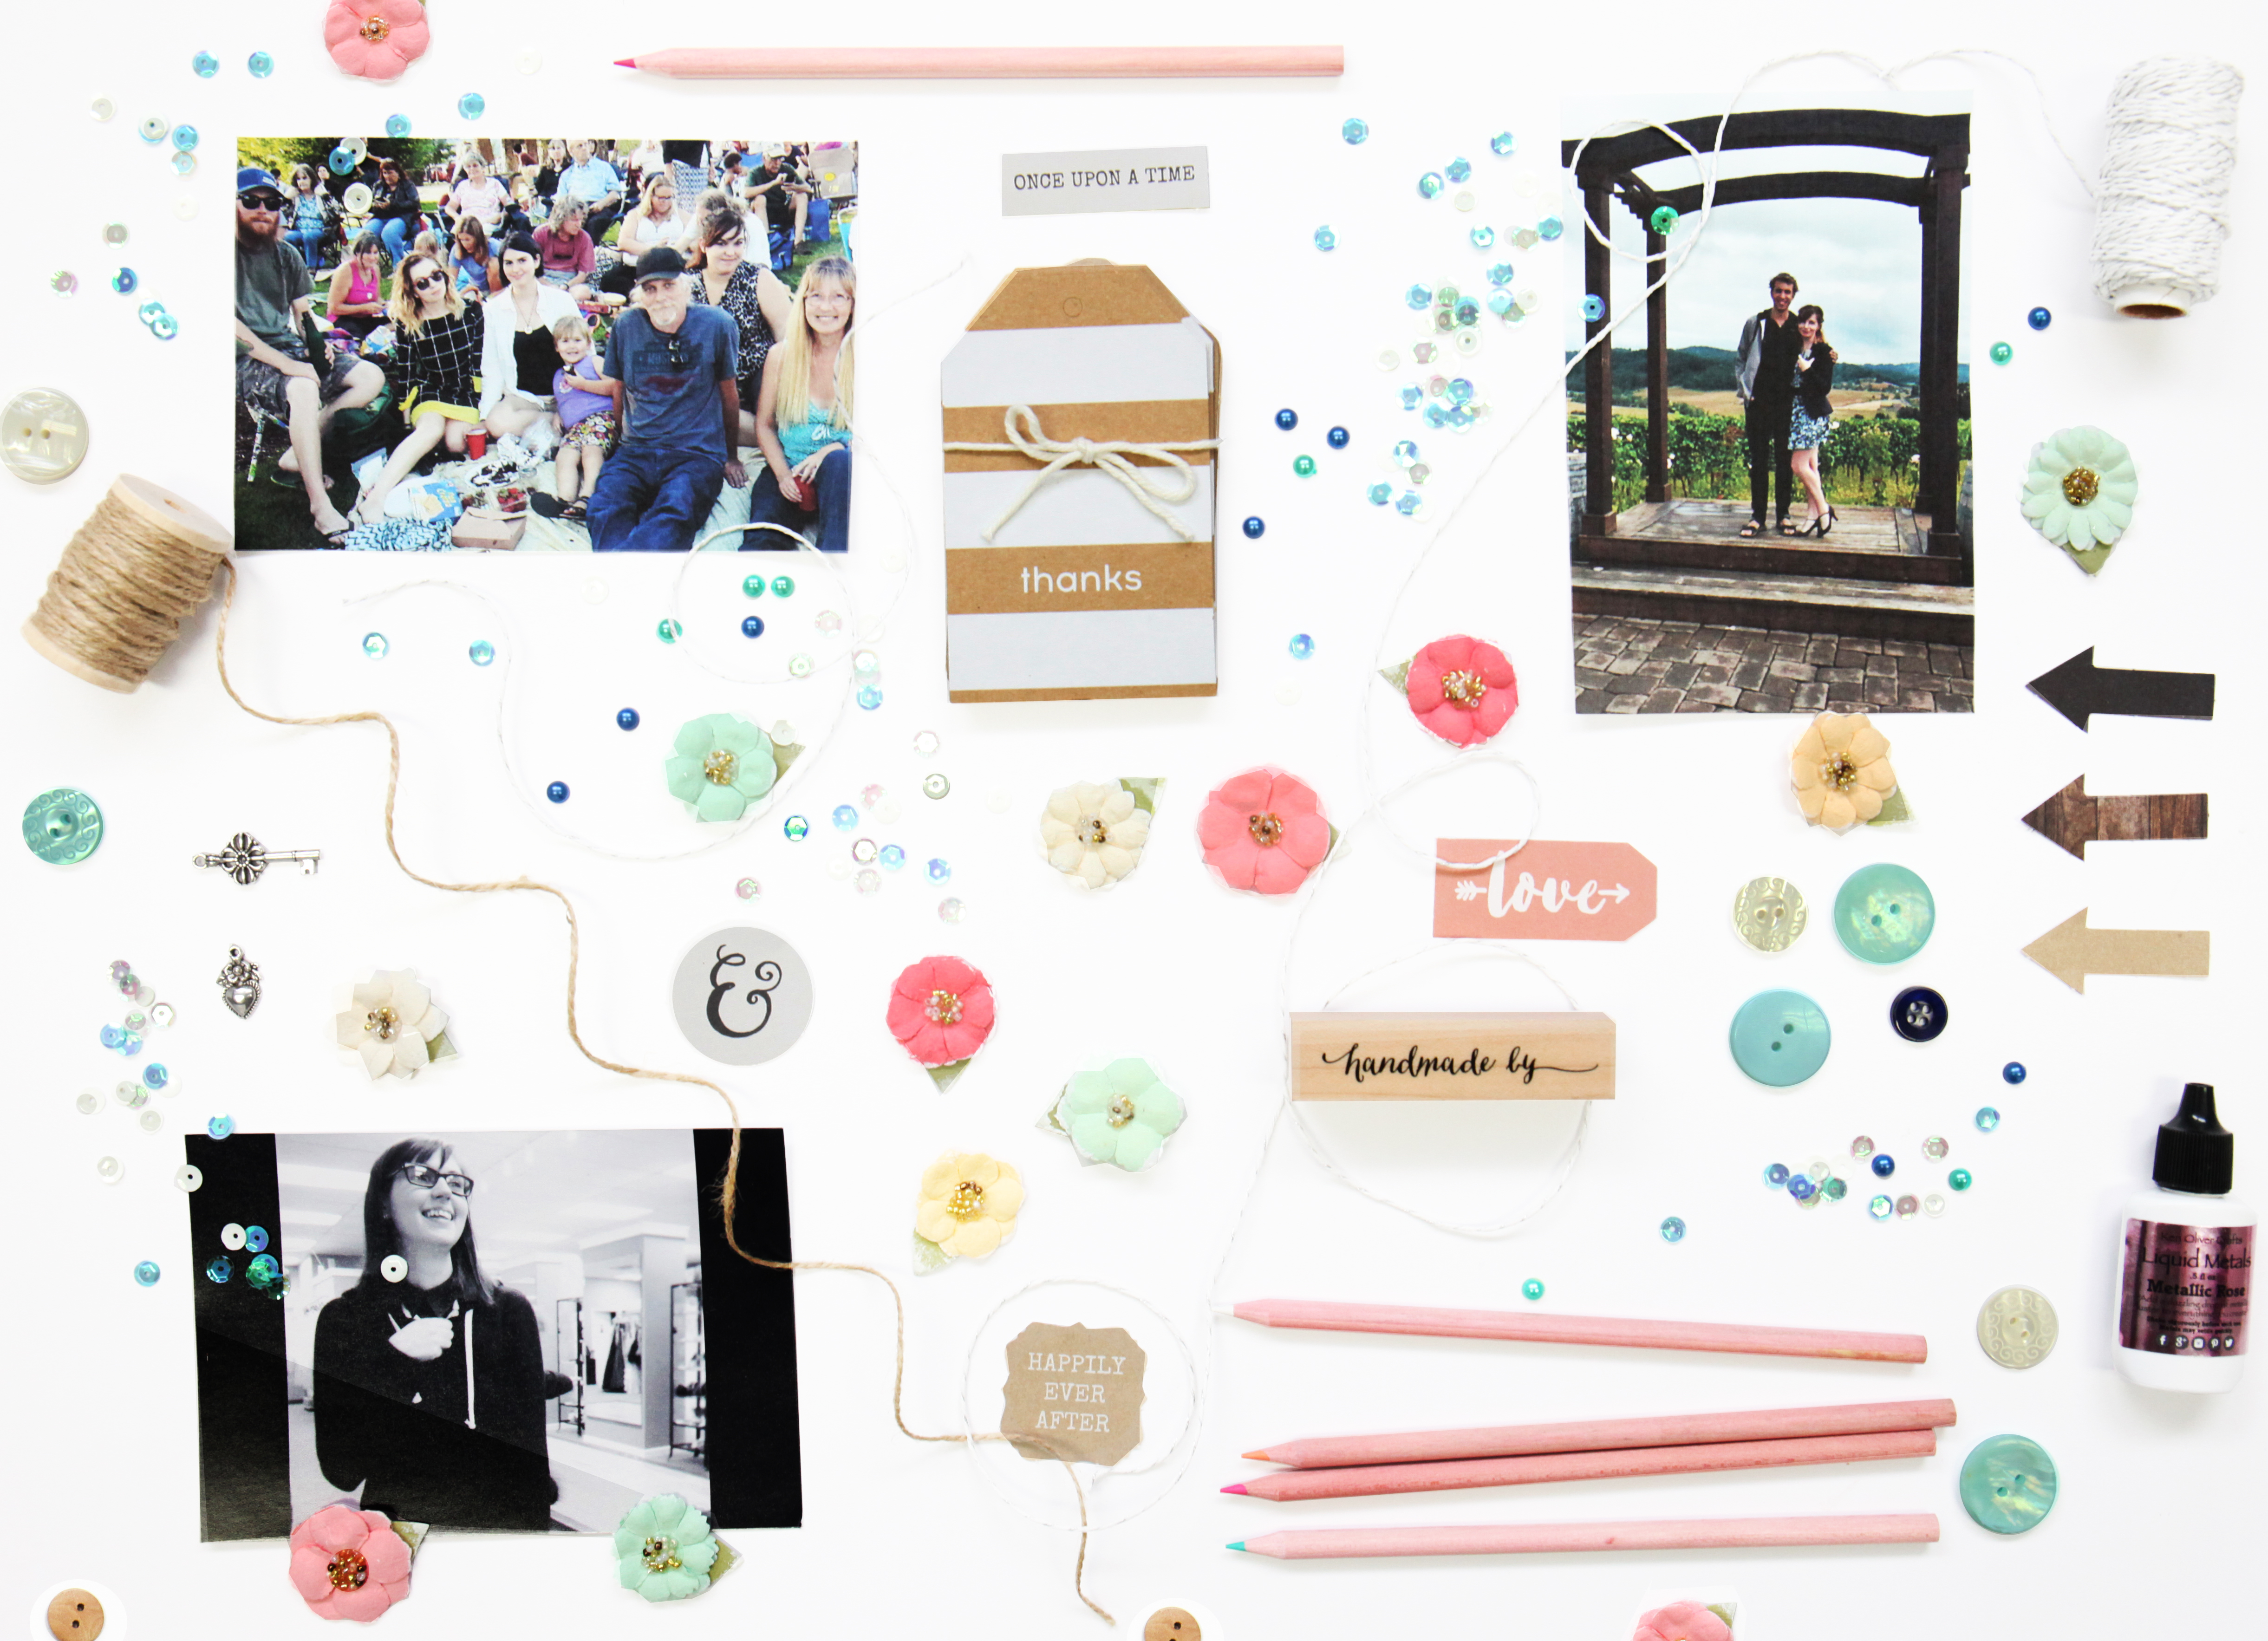 Scrapbooking: a selection of articles